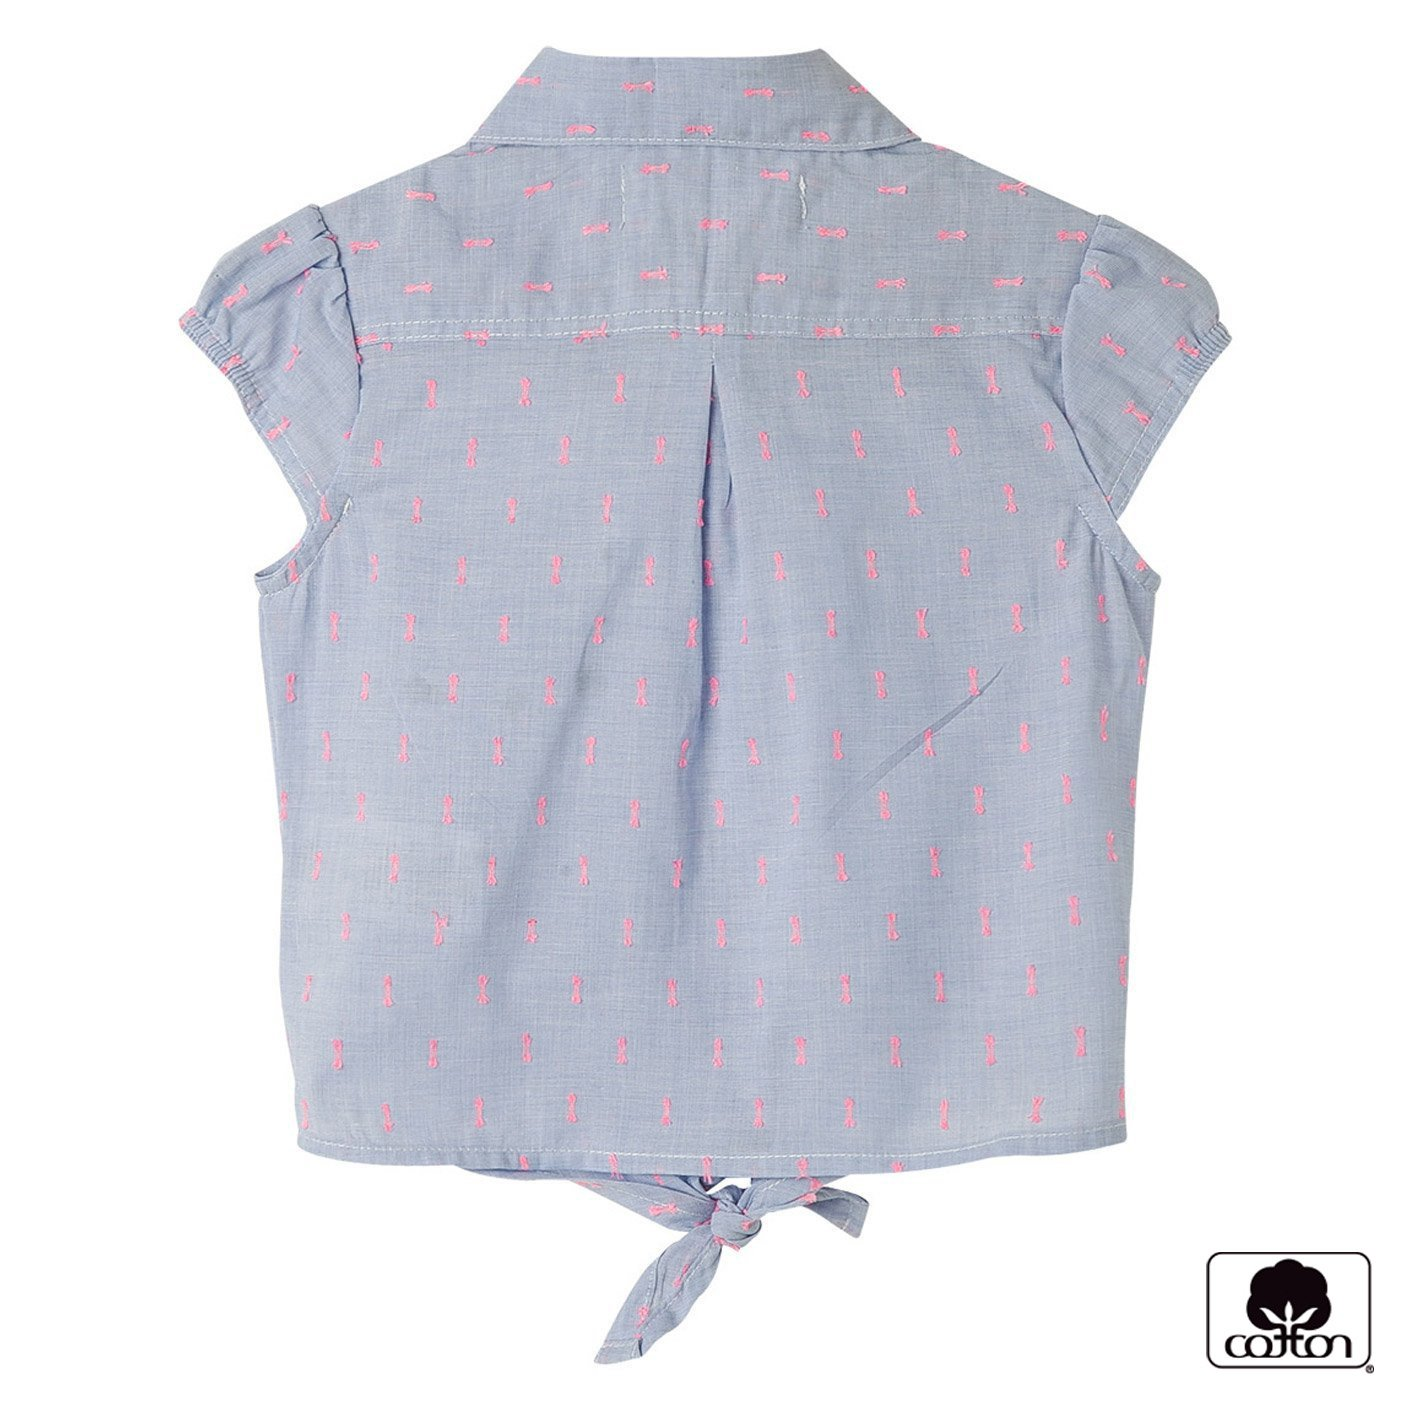 Amazon.com: OFFCORSS Toddler Girls Sleeveless Collared Shirt Blouse | Blusa Casual de Niña: Clothing